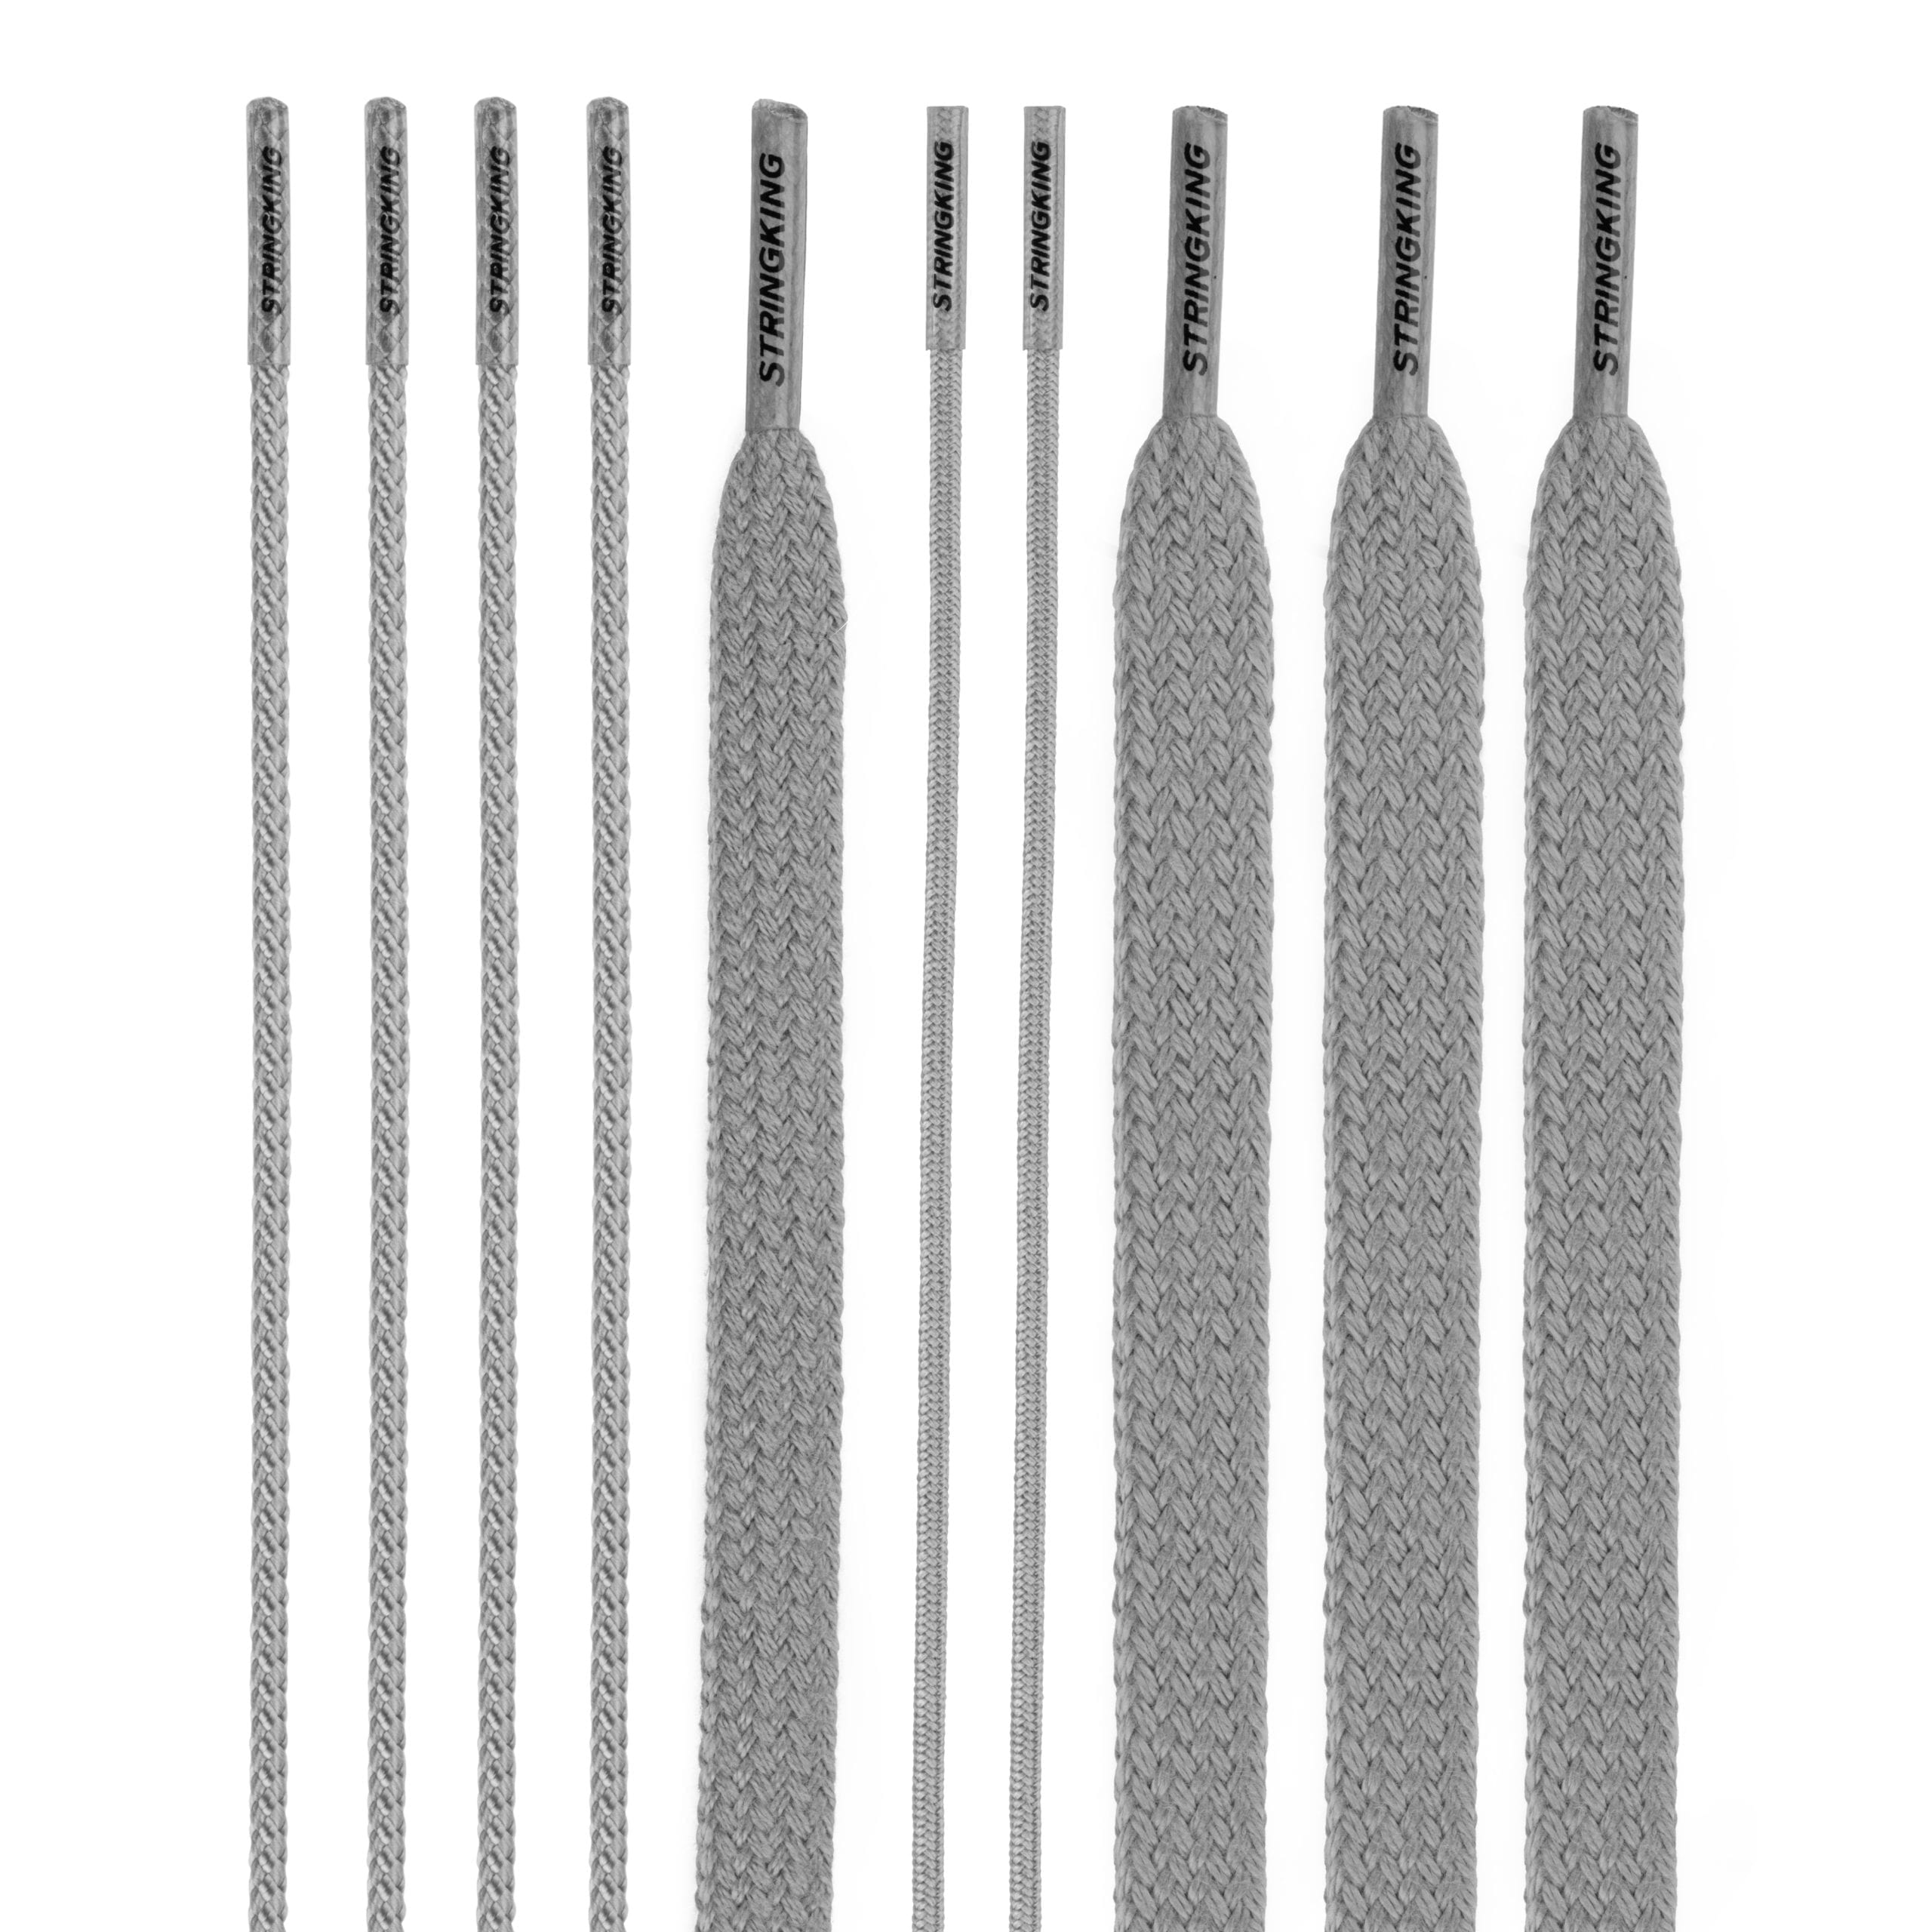 string-kit-BB-retailers-silver-1-scaled-1.jpg